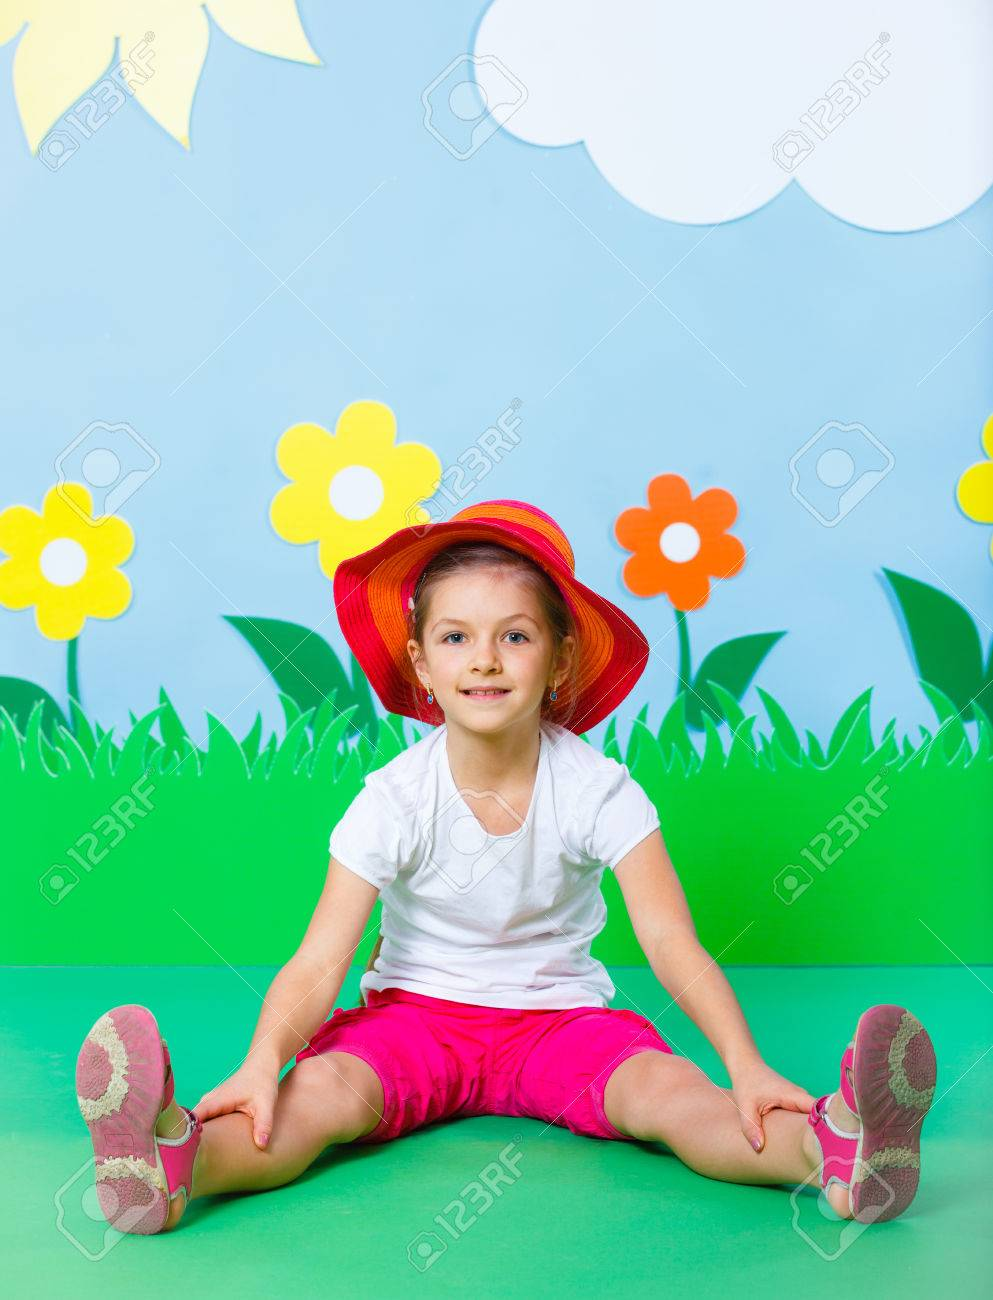 Lovely Young girl wearing colorful summer clothing on Fashion and Beauty Summer theme Stock Photo - 27361016